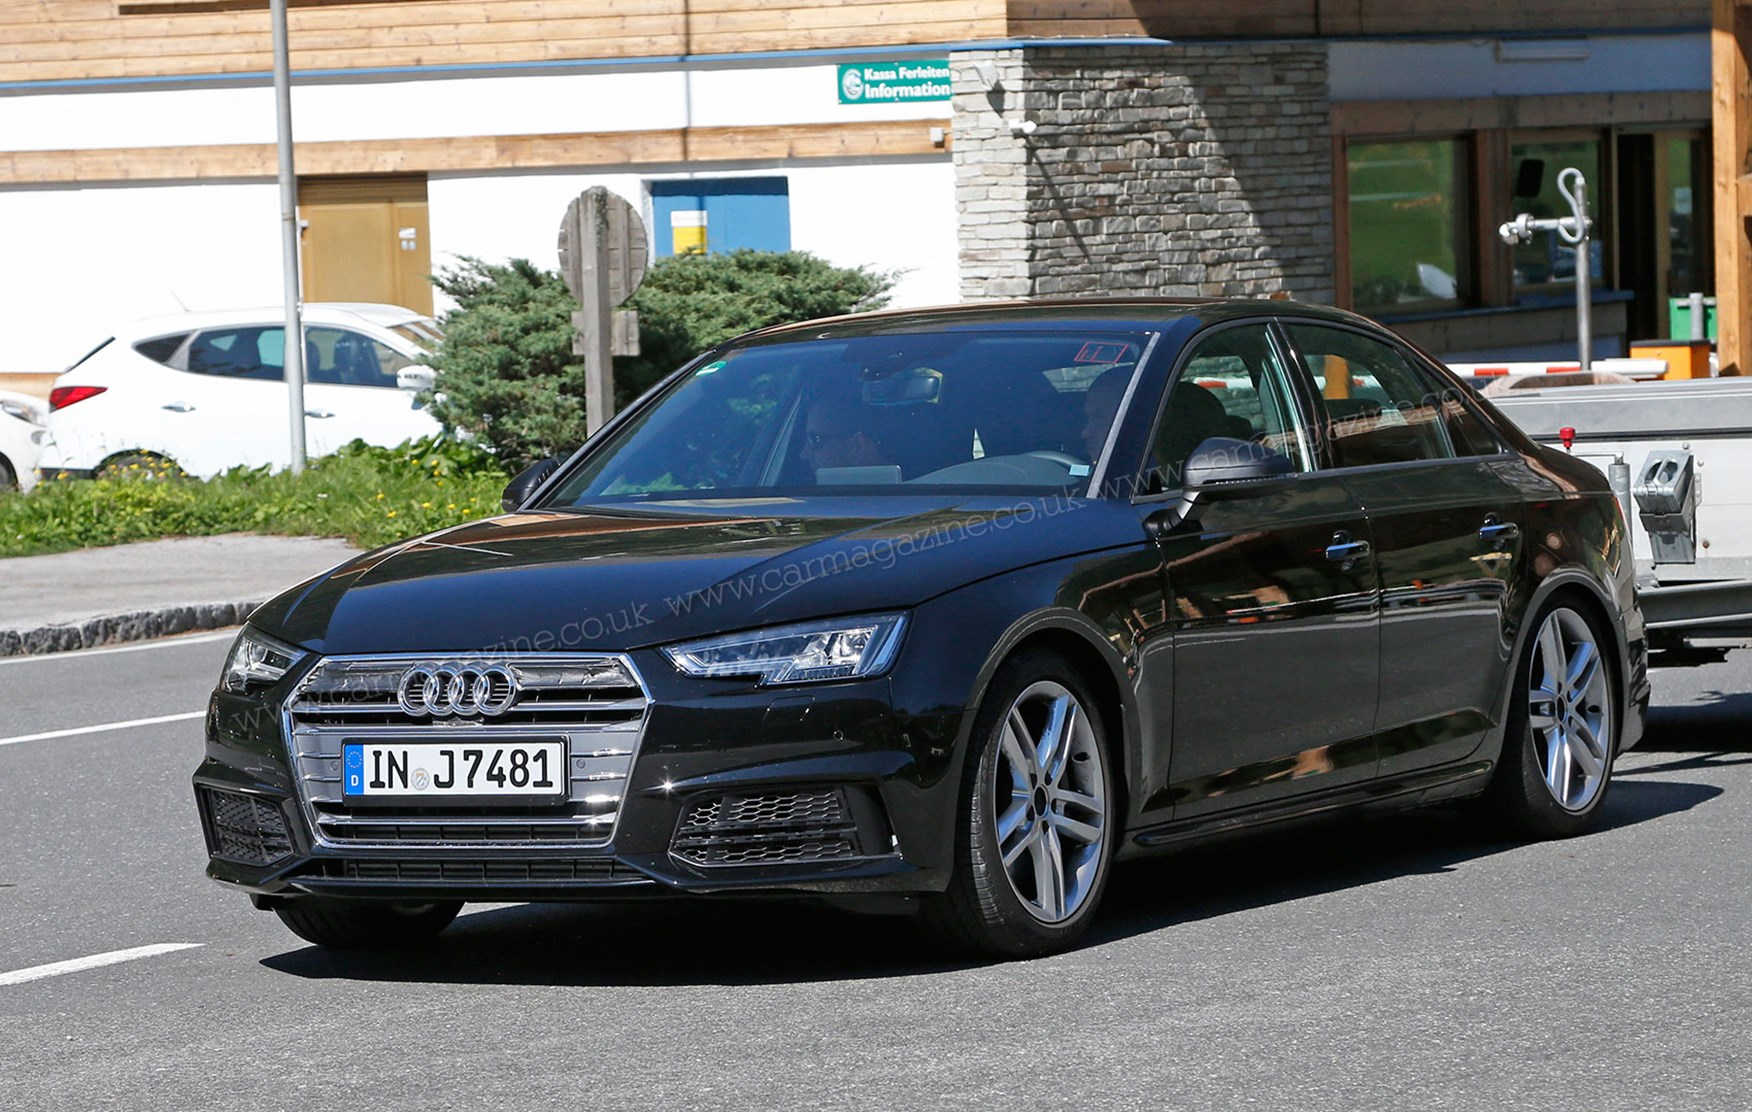 ... S4 Audi S4 prototype testing at the Nurburgring, 2015 New Audi S4 will